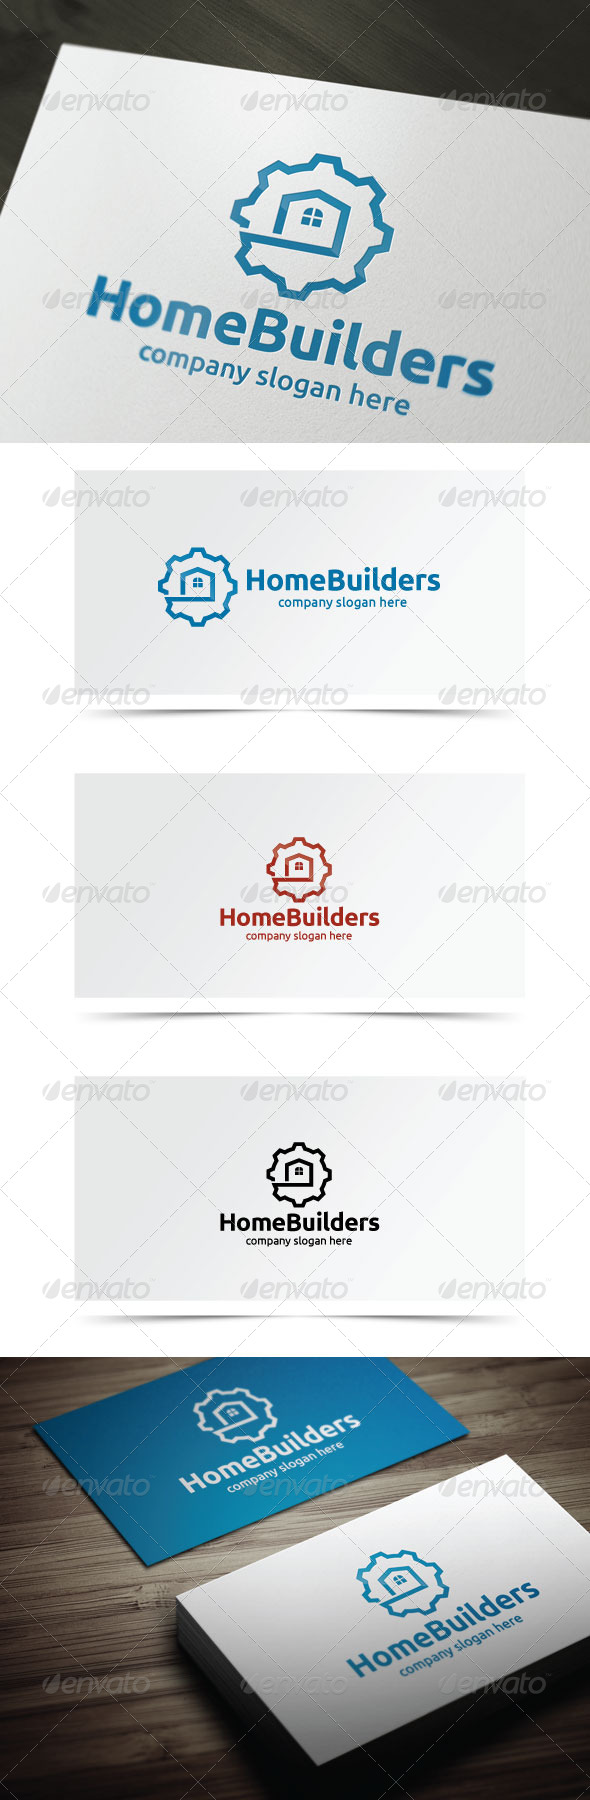 GraphicRiver Home Builders 7481551